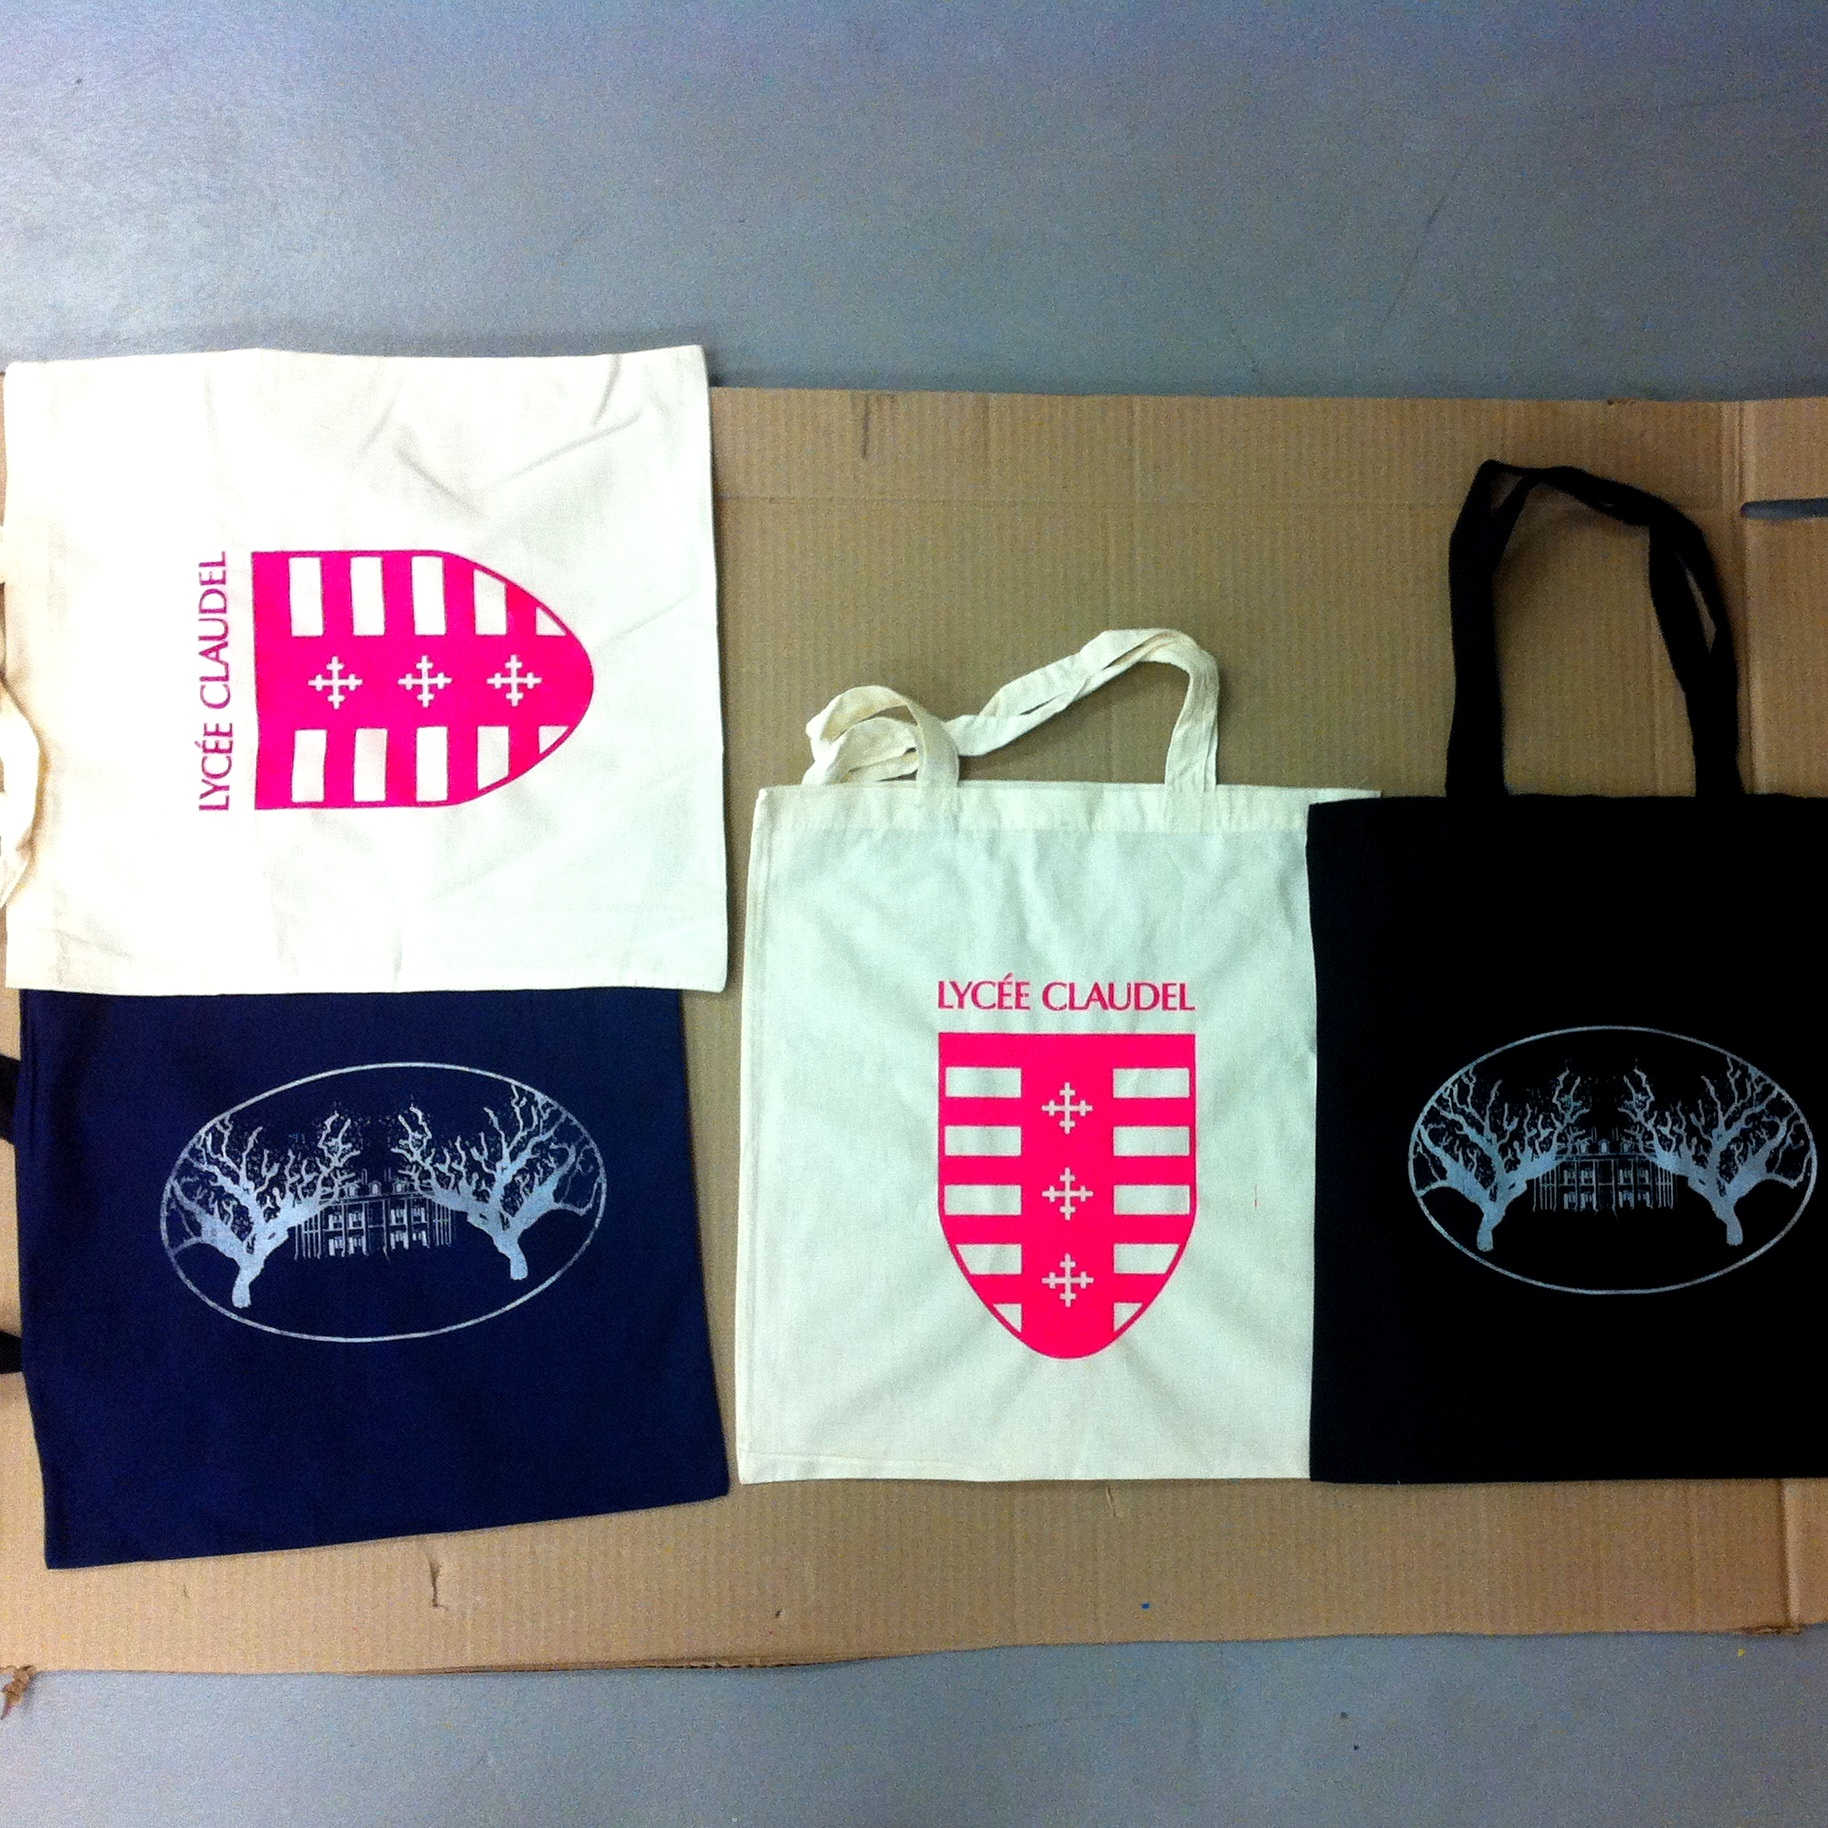 School Swag / School Pride - Students and teachers will learn to print on tote bags and t-shirts using pre-made screens with their logo/hashtag/school mascot. Perfect for special events and fundraisers.